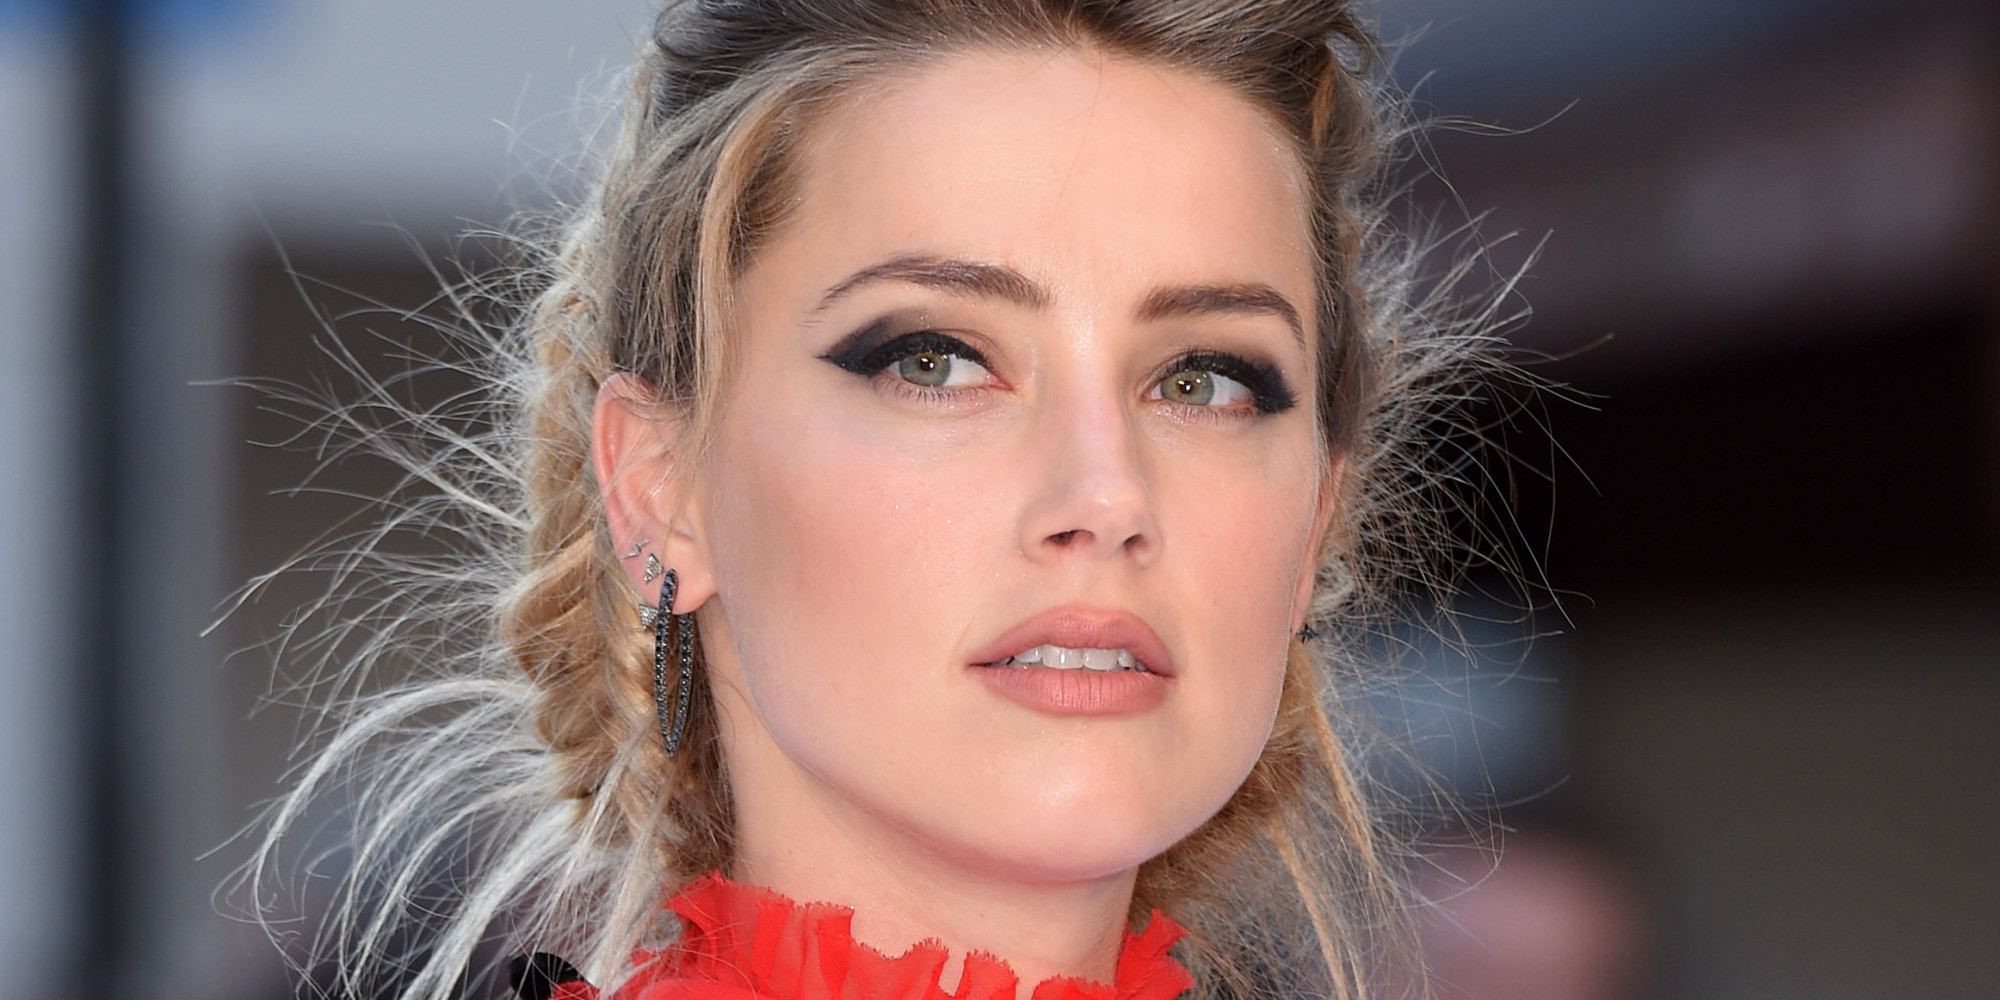 Amber Heard Amber Heard Stuns In Flowing Red Dress At 'Magic Mike XXL' Premiere |  HuffPost